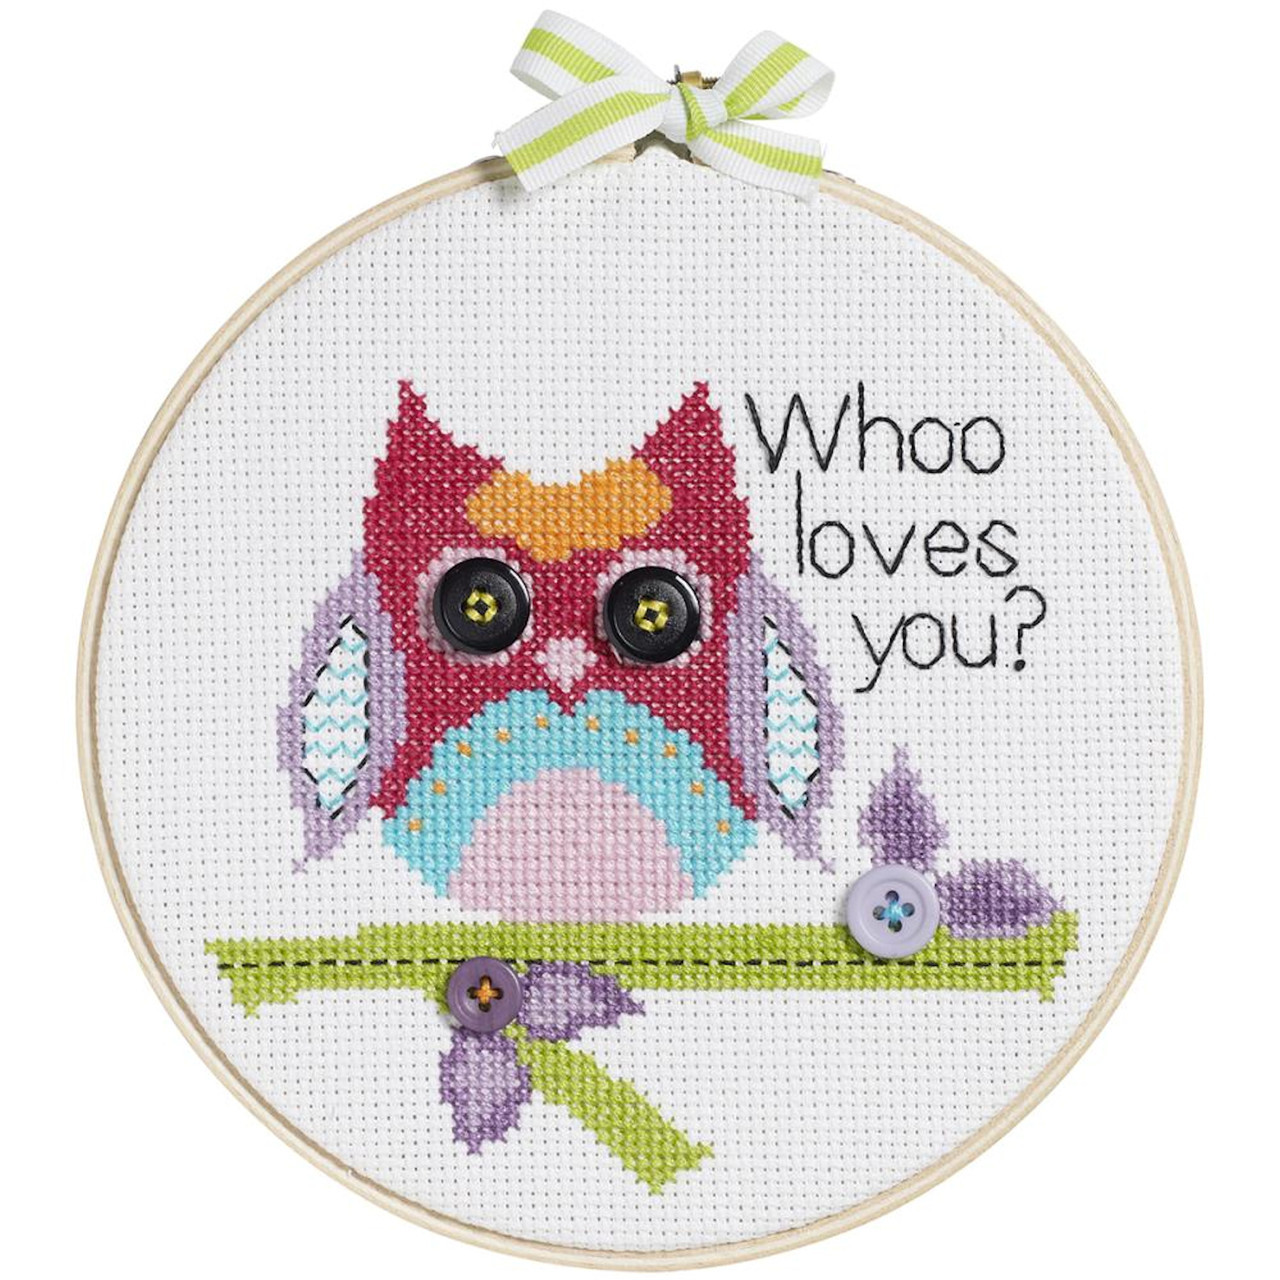 My 1st Stitch - Whoo Loves You?